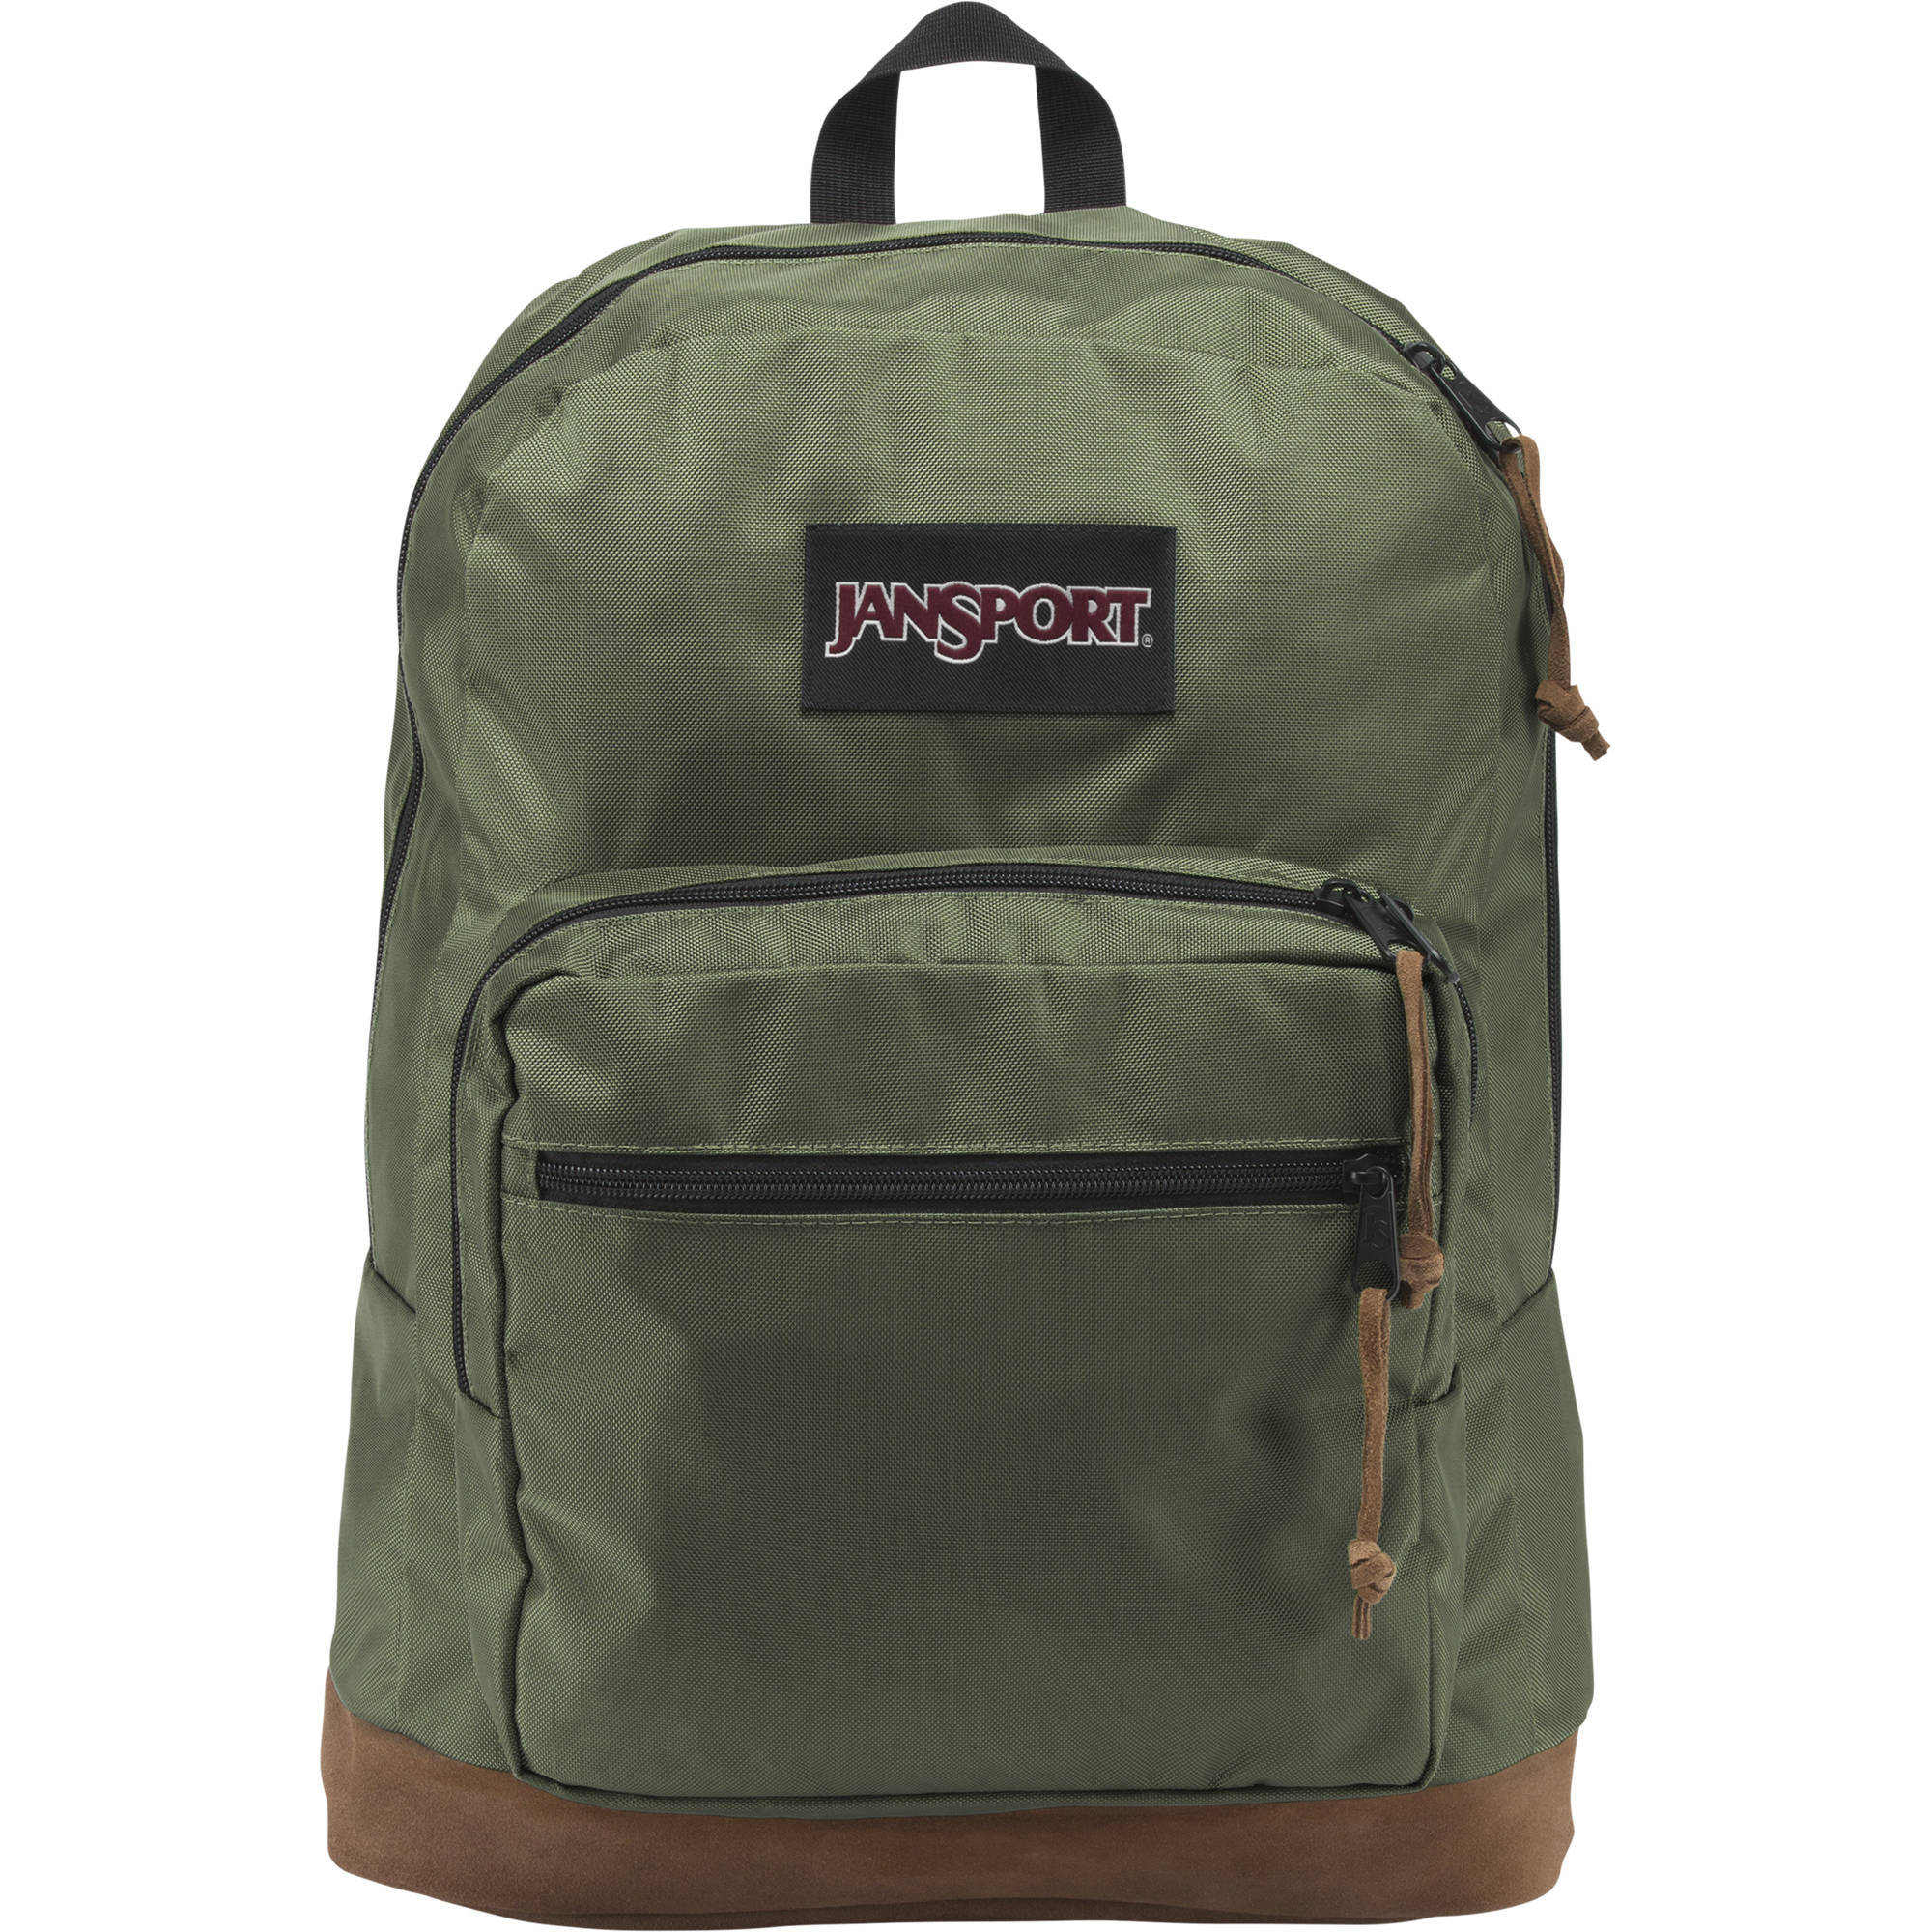 321a1826eead Jansport Pink Blush Right Pack Backpack- Fenix Toulouse Handball